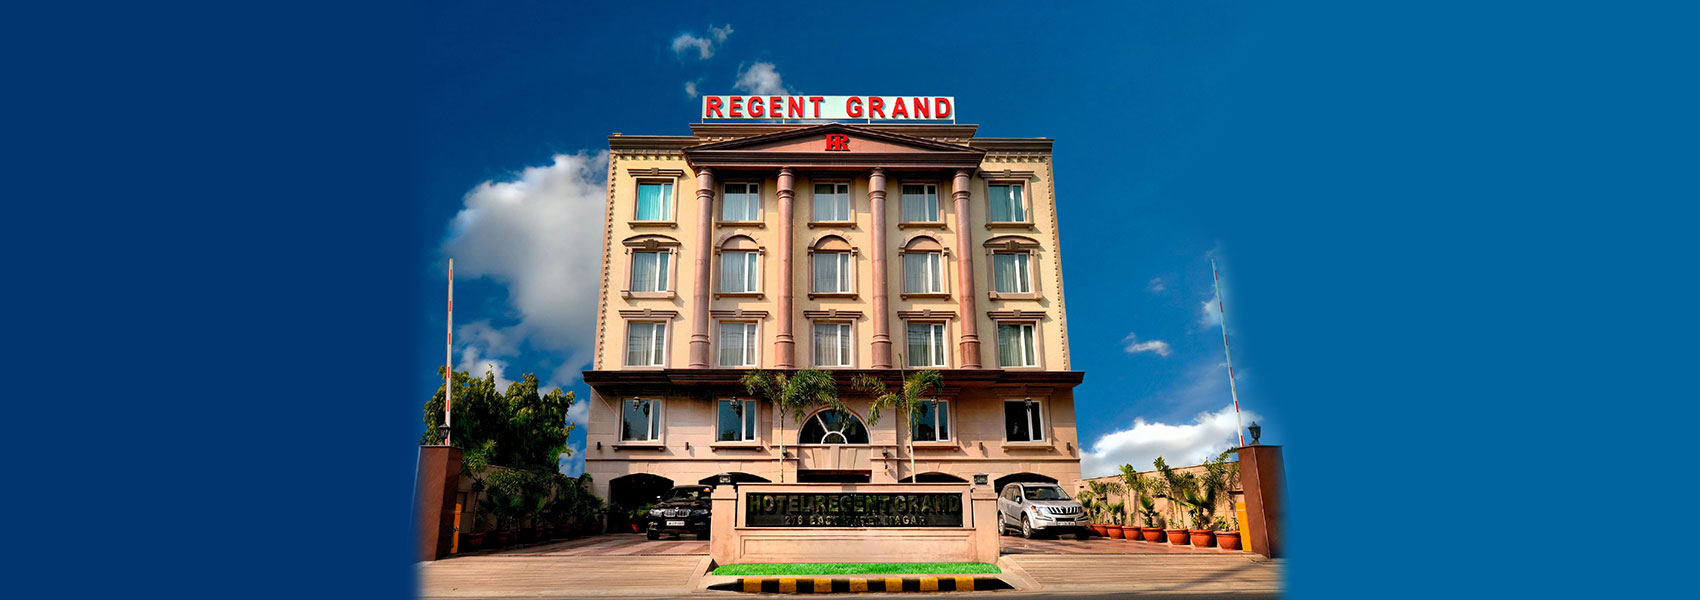 Hotel regent grand is one of the best hotel price in delhi